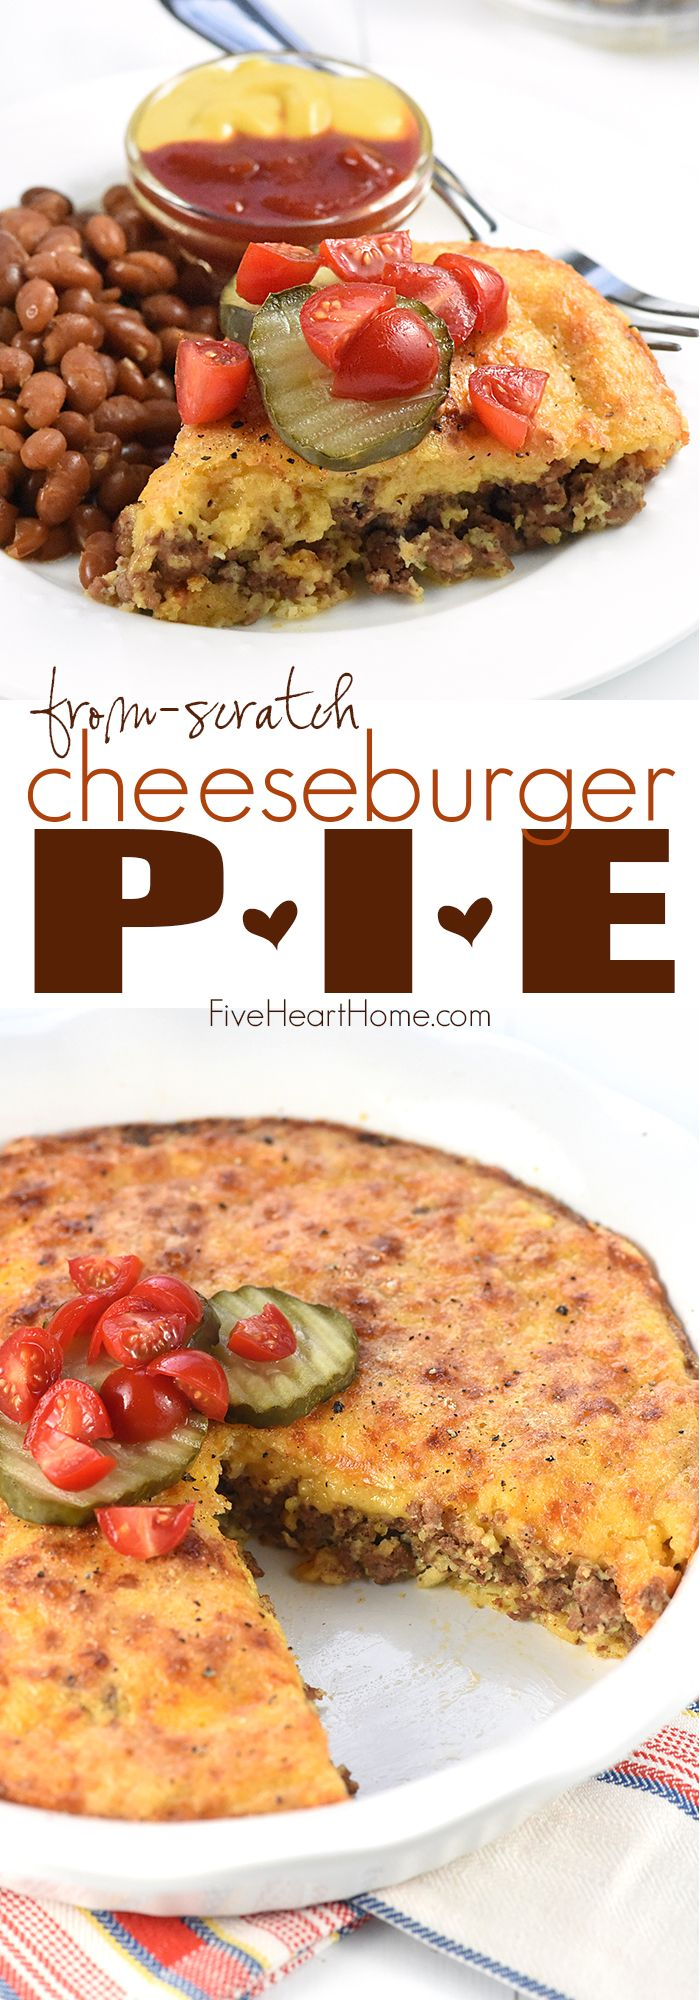 From-Scratch Cheeseburger Pie ~ this classic recipe gets a wholesome, real food twist with seasoned ground beef, grated cheddar cheese, and a topping made with whole wheat flour instead of Bisquick!   FiveHeartHome.com